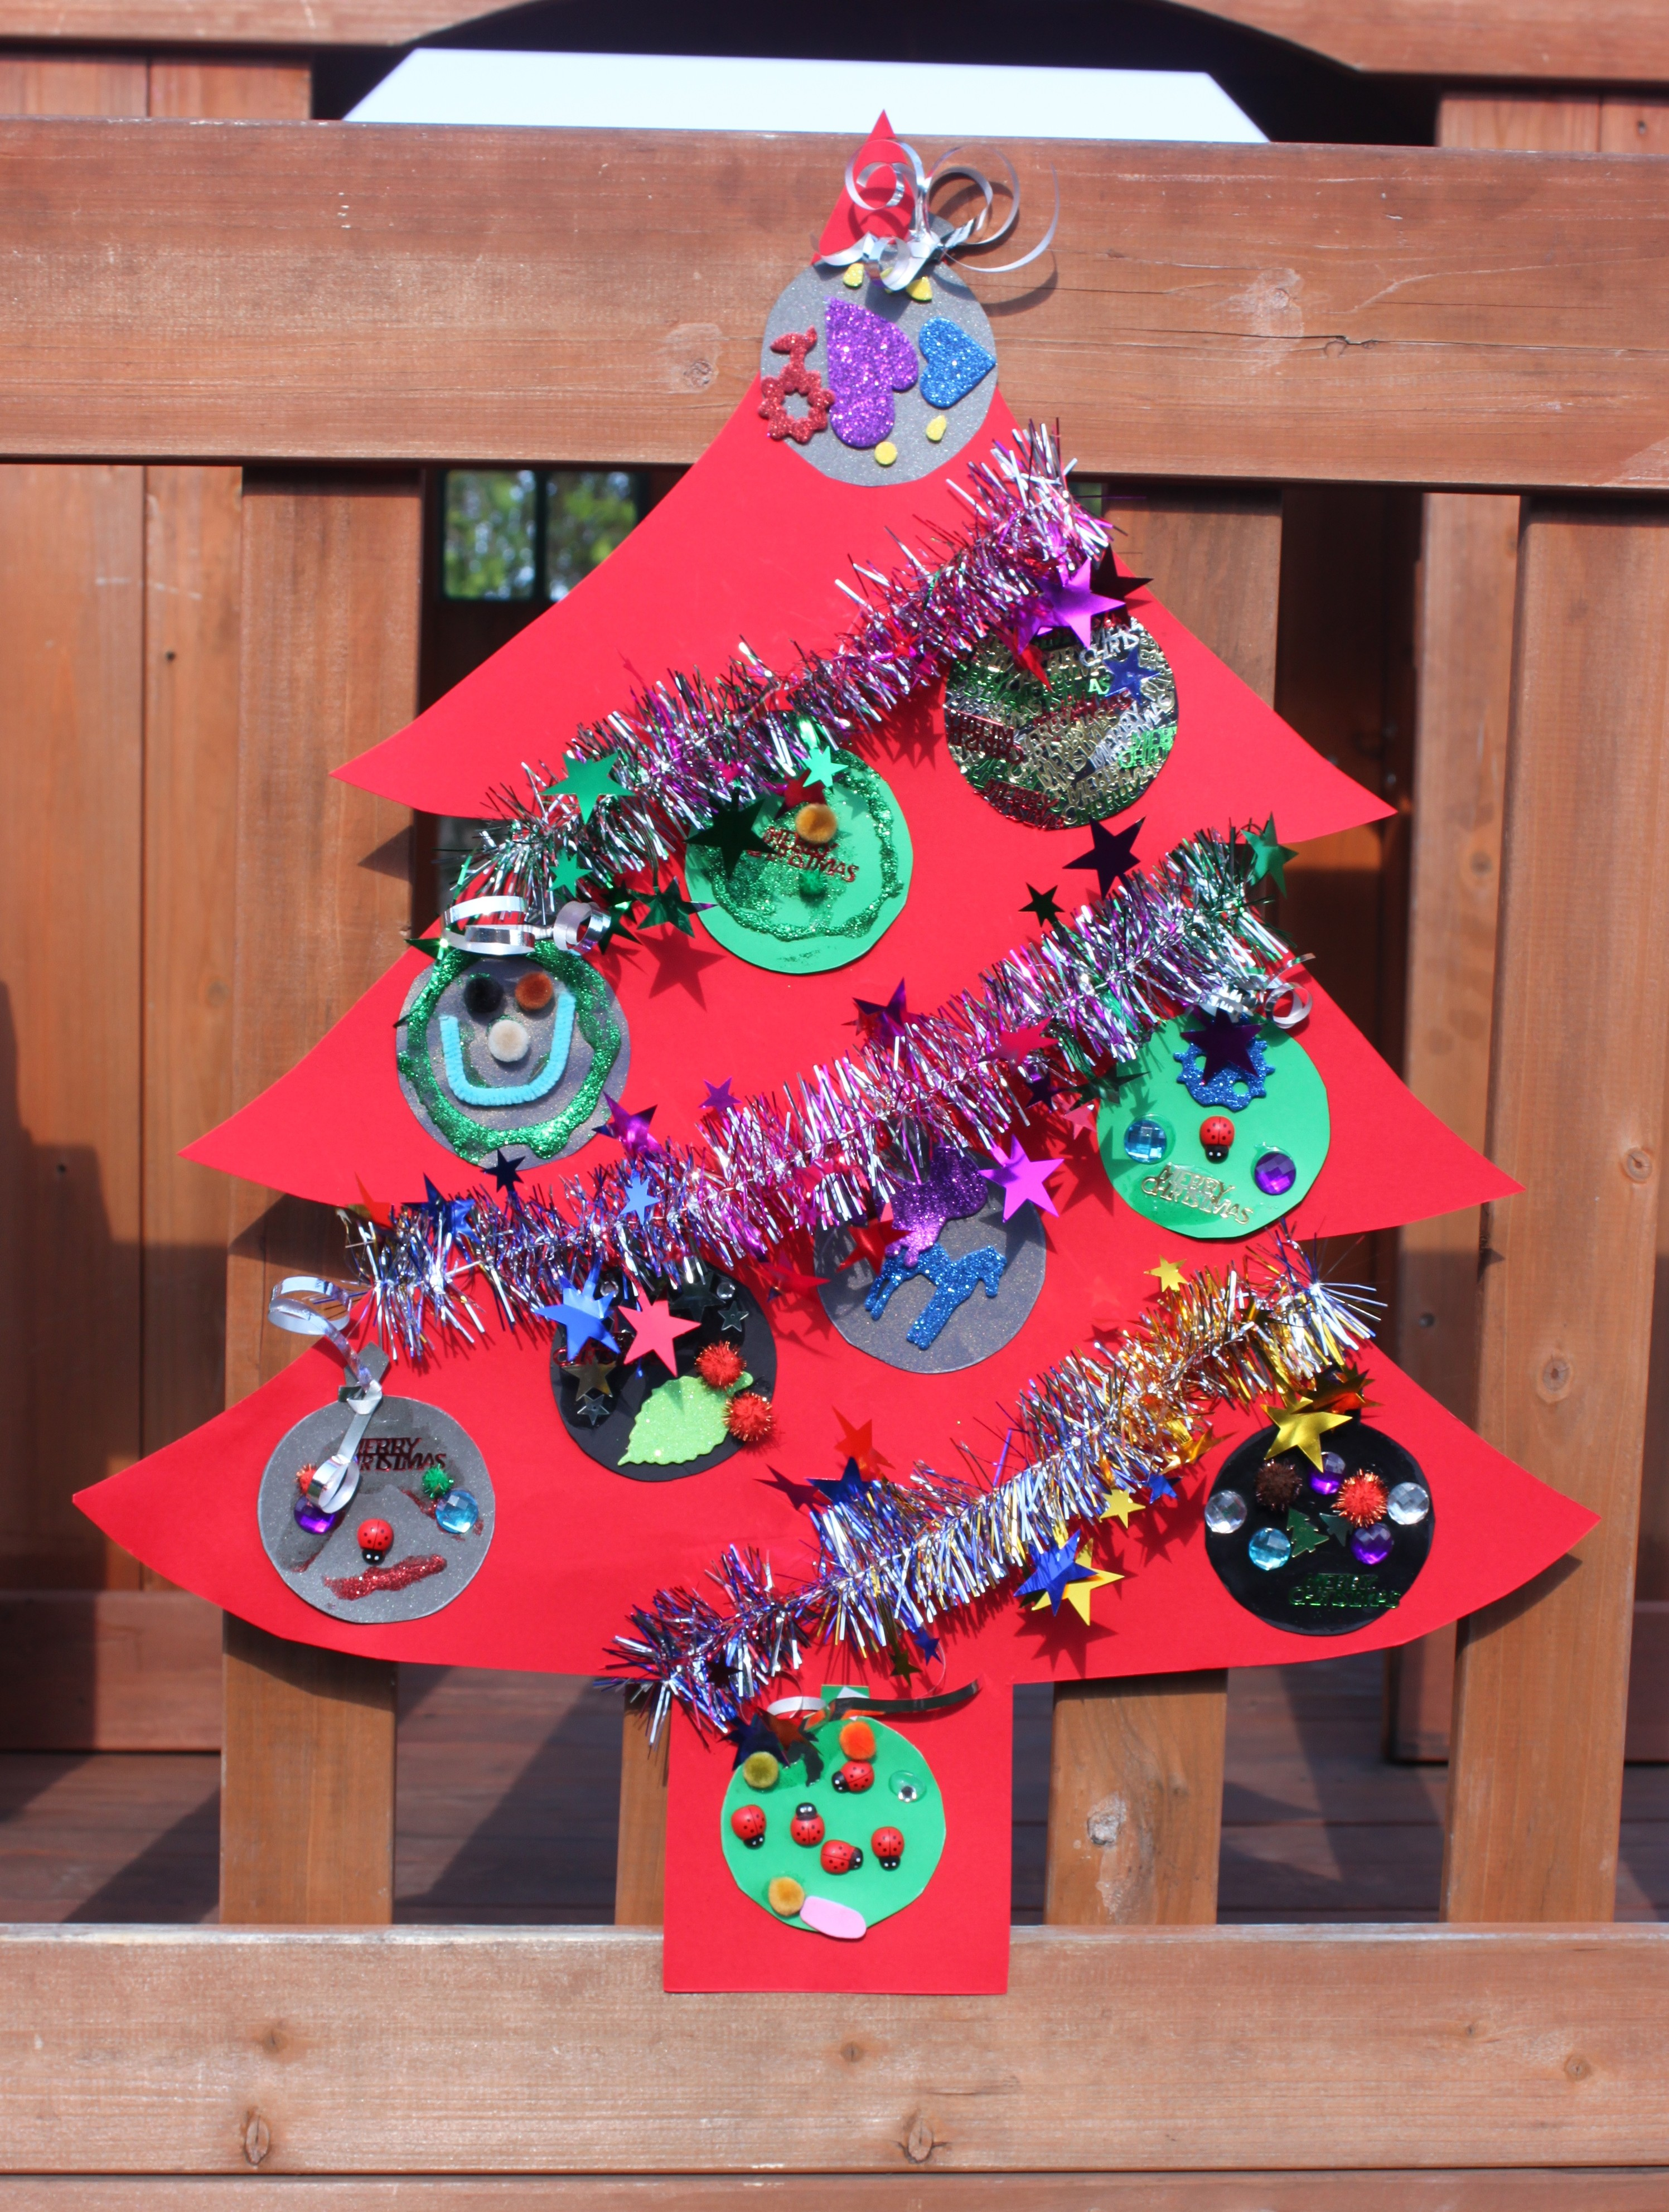 Christmas tree crafts for kids   Crafts and Worksheets for Preschool,Toddler and Kindergarten